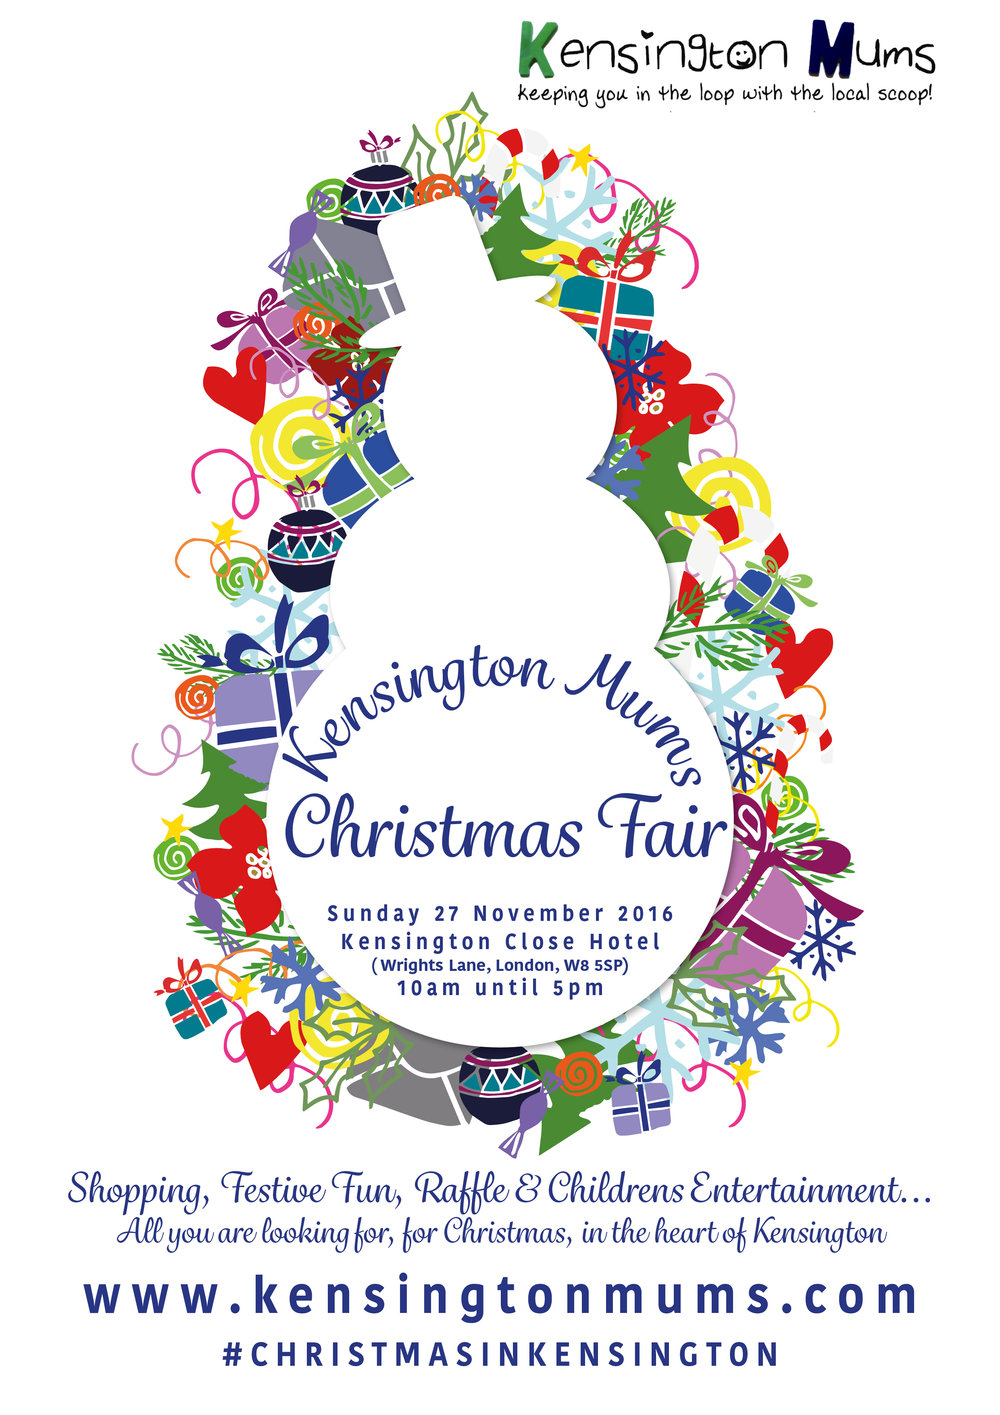 Kensington Mums Christmas Fair